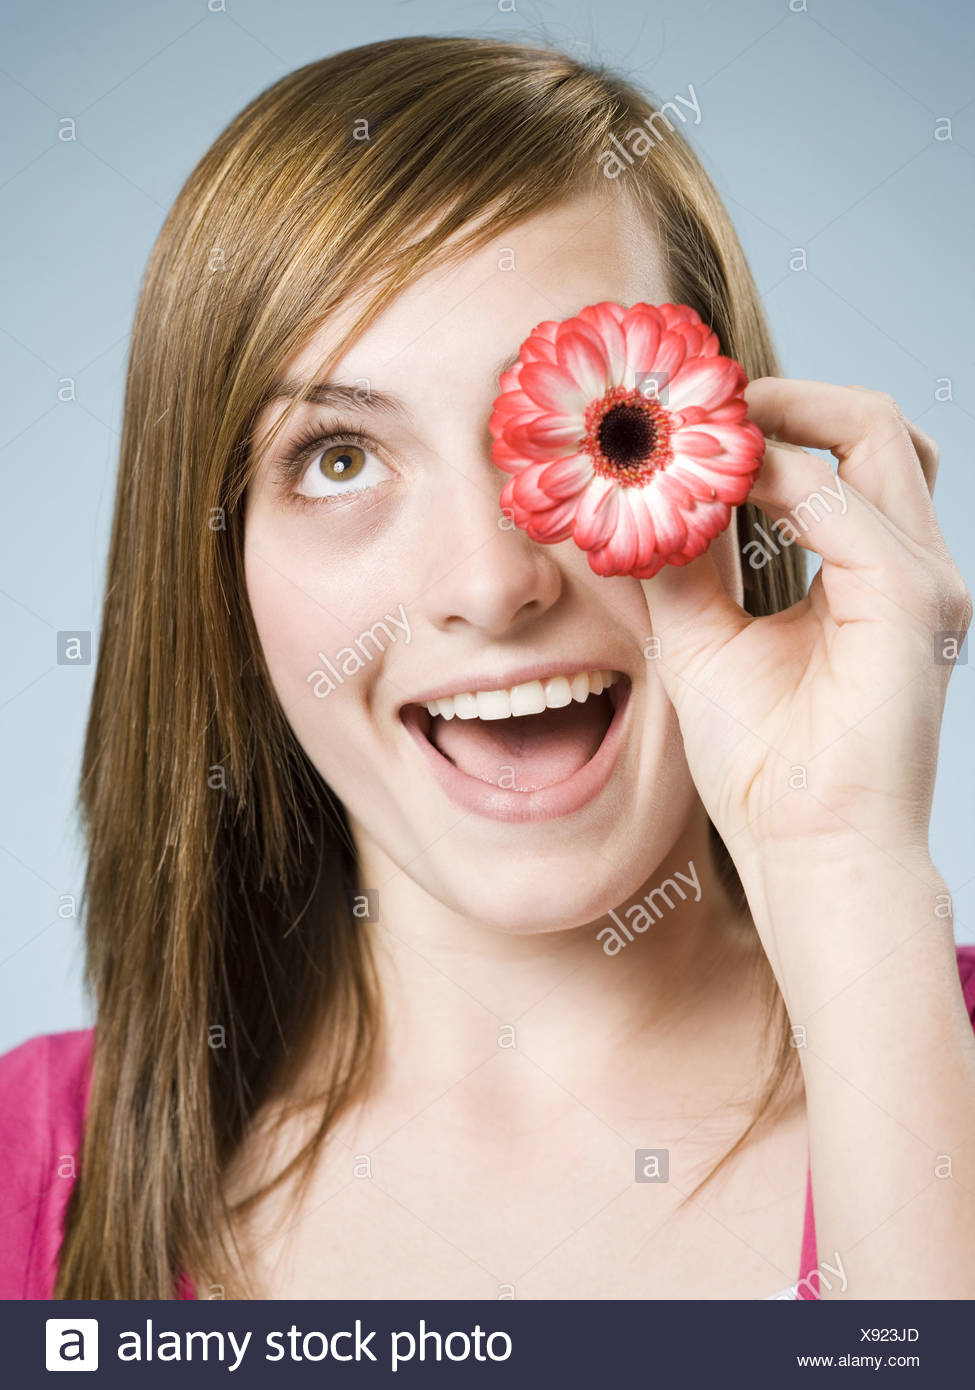 Close-up of woman smiling holding flower up to her eye - Stock Image